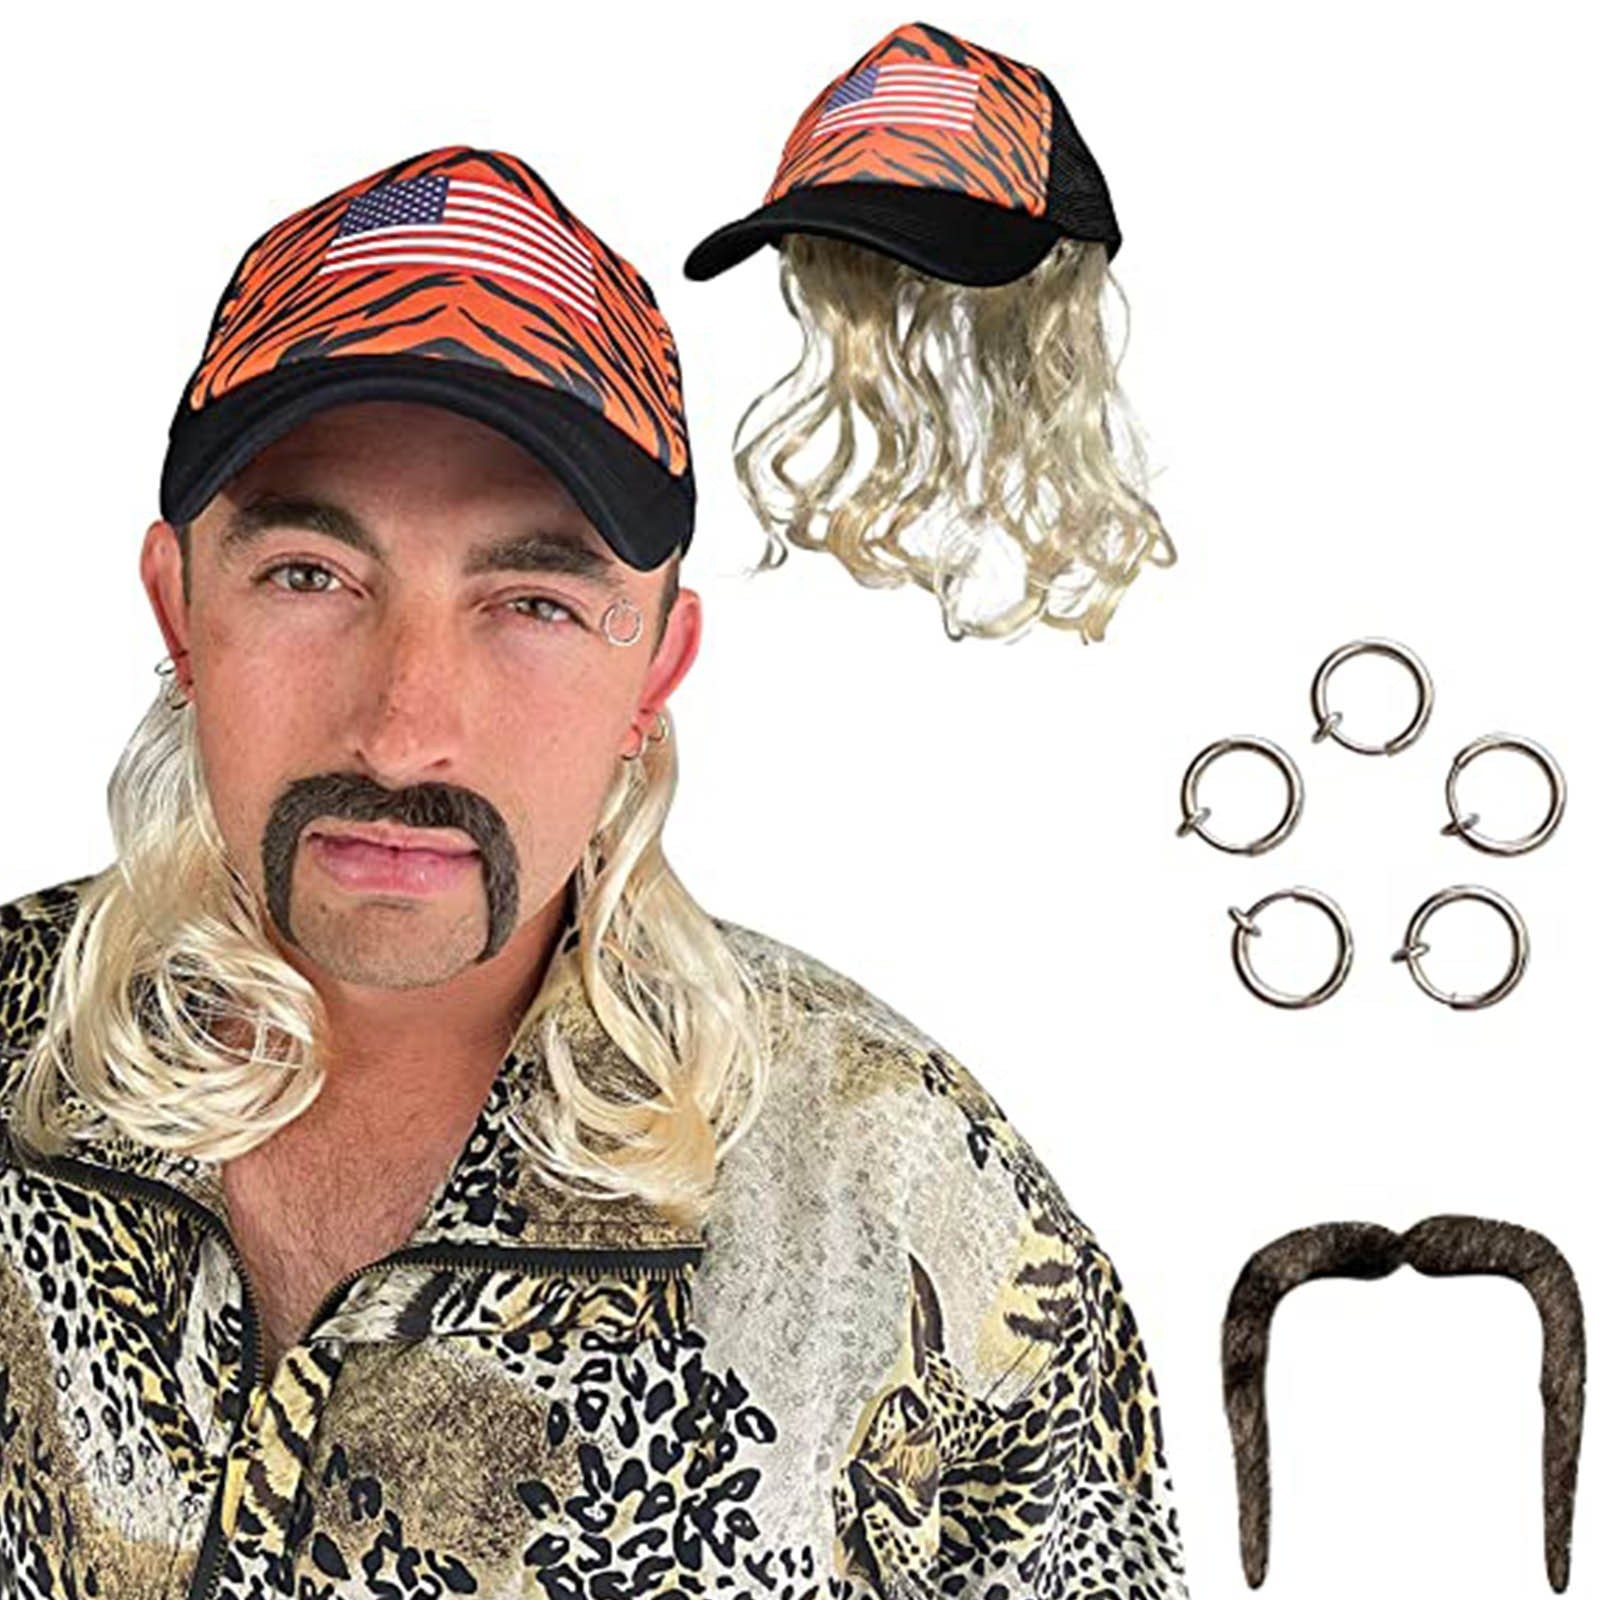 Tiger King Costume Set - Joe Exotic Cosplay - Blonde Wig With Hat, Clip Earrings, And Mustache - Fits Kids And Adults